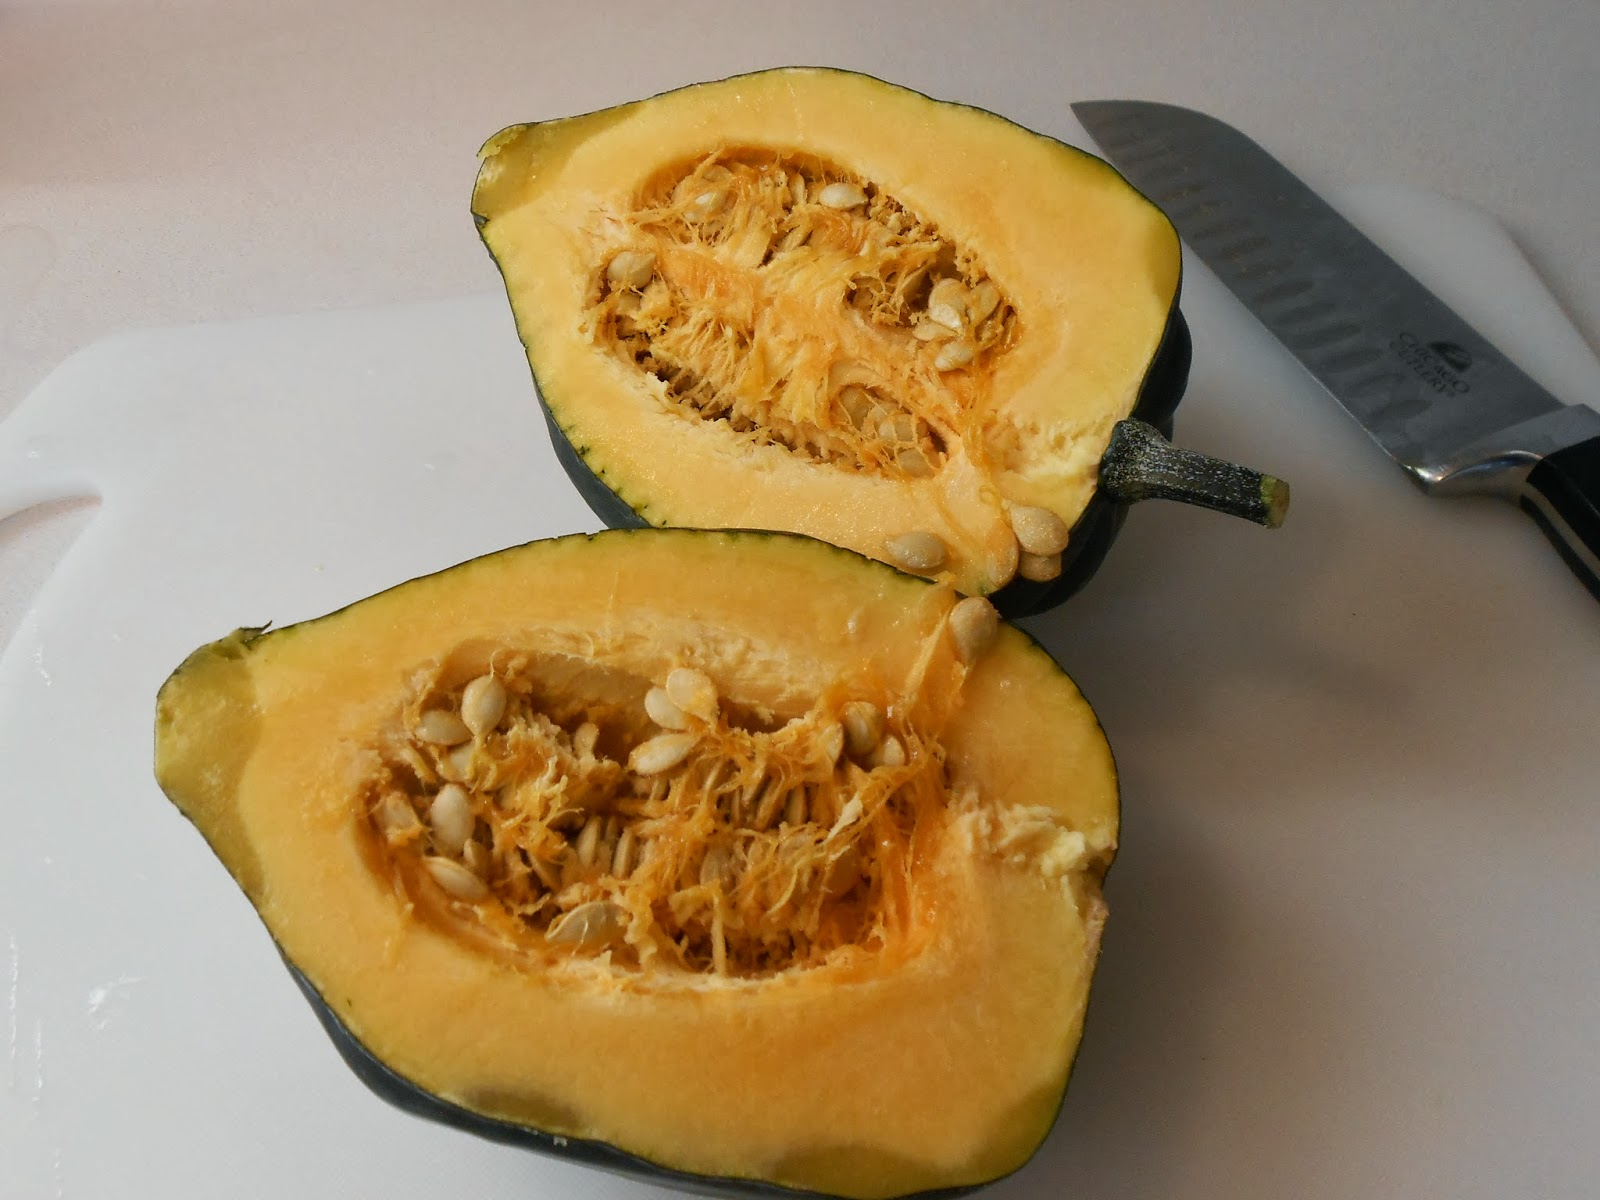 My Kind of Cooking: Baked Acorn Squash